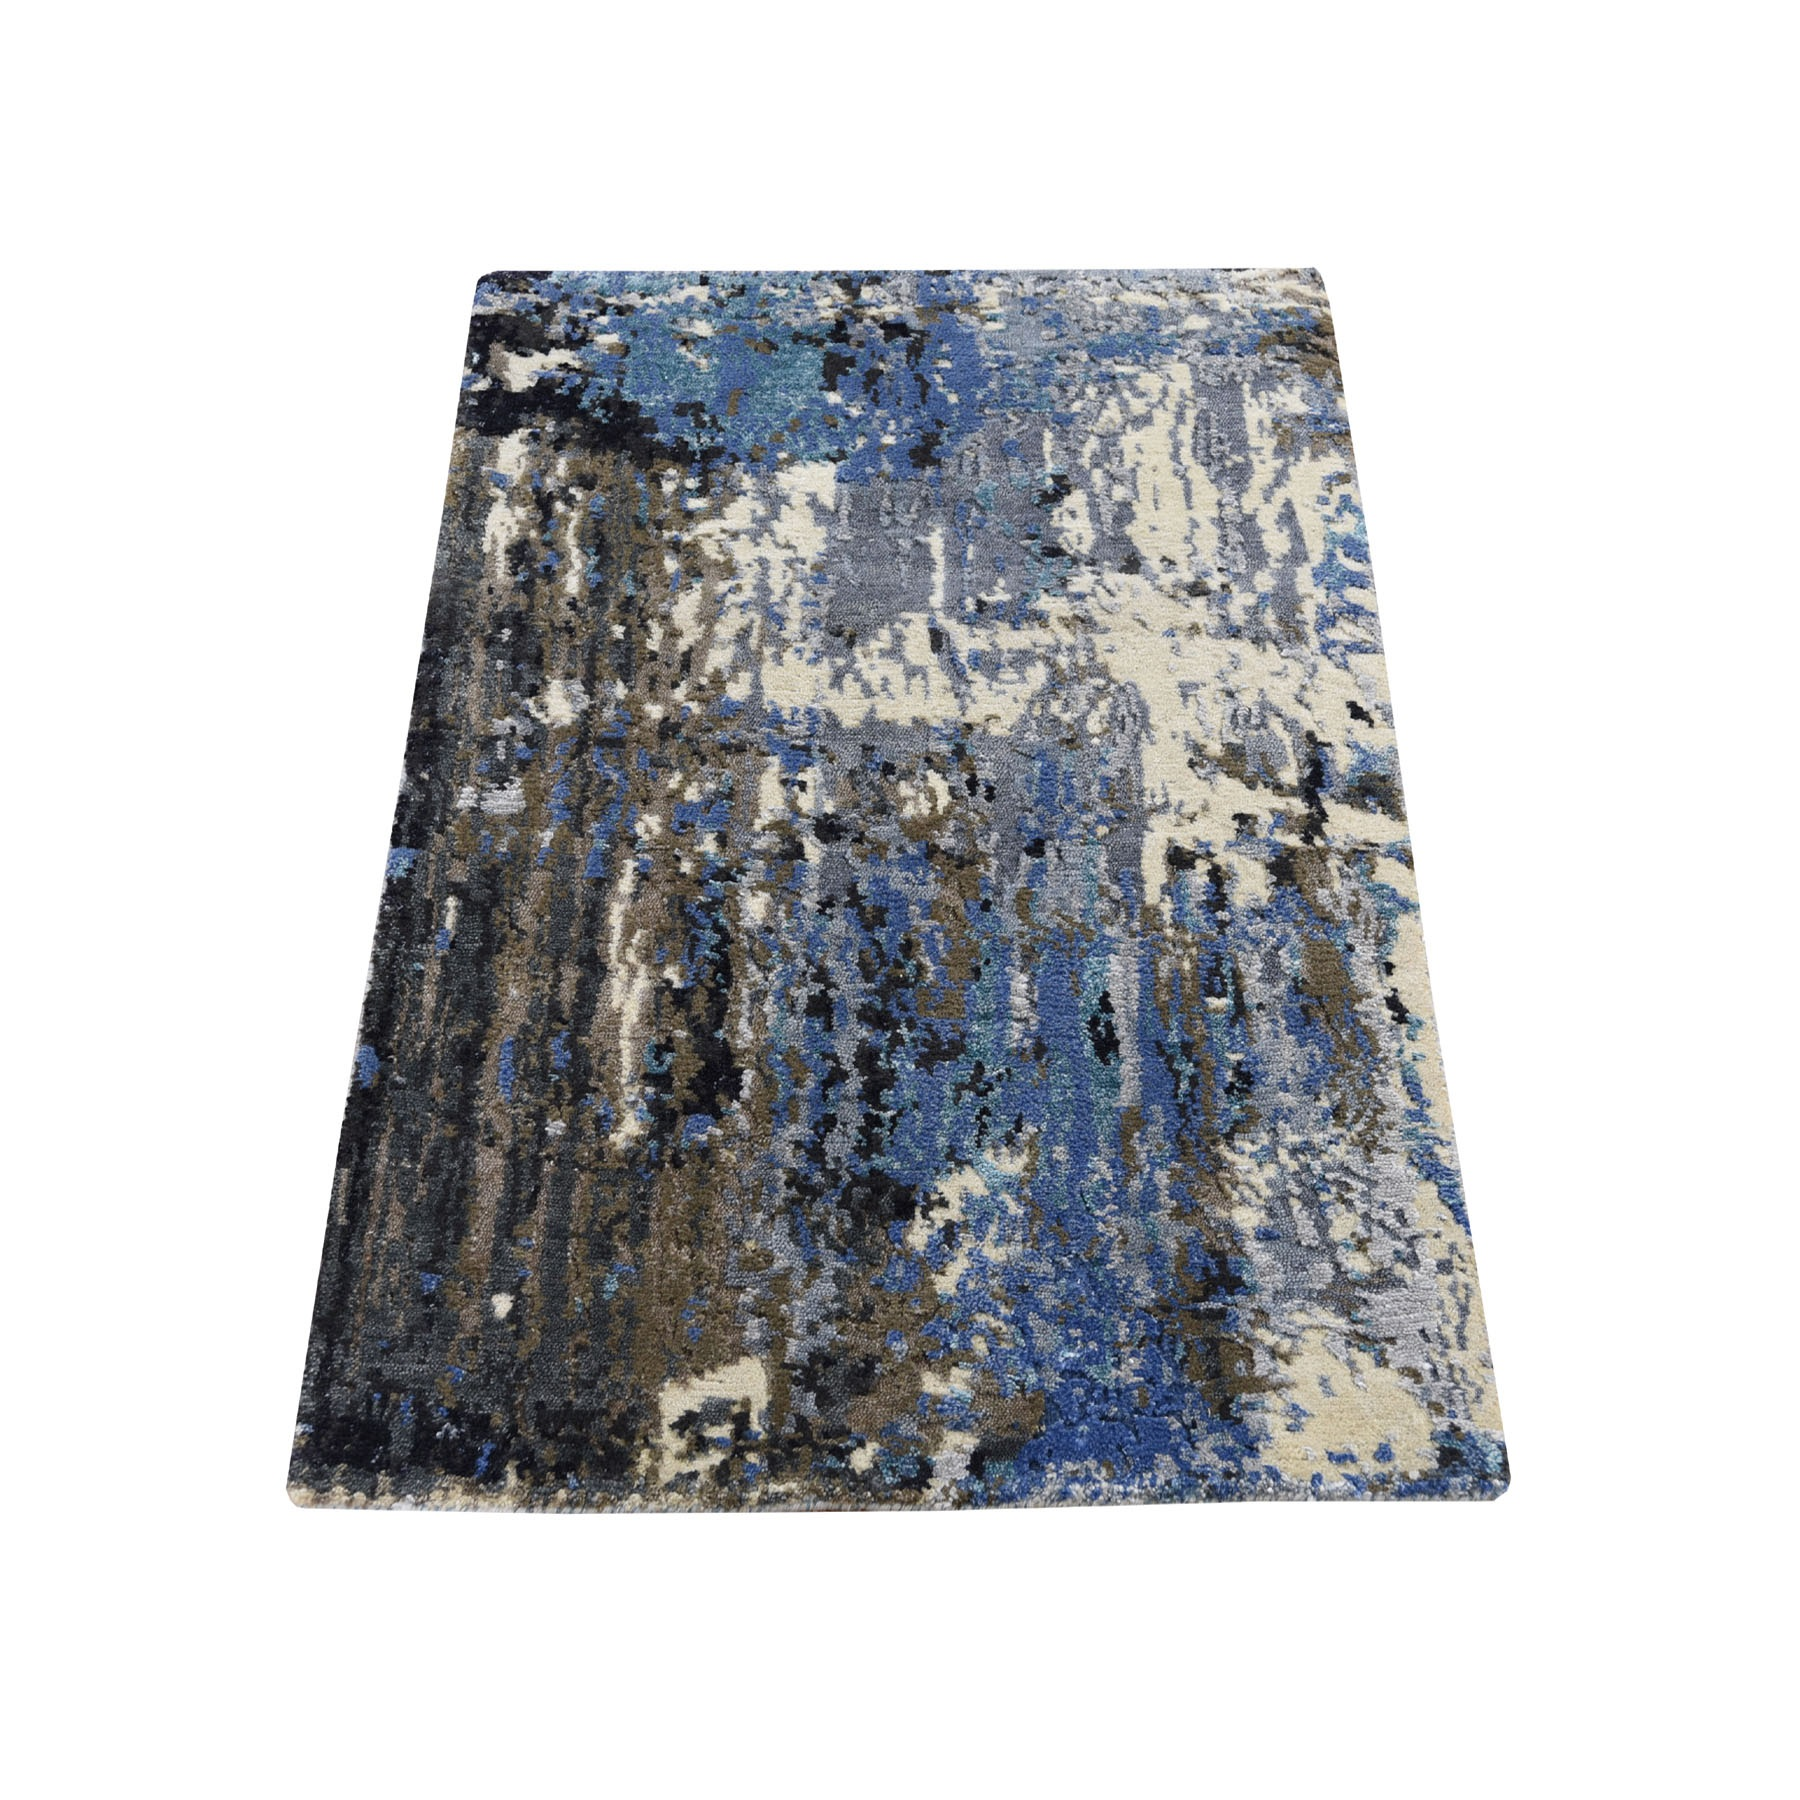 2'X3' Sample Blue-Gray Abstract Design Wool And Silk Hand-Knotted Oriental Rug moad68ca